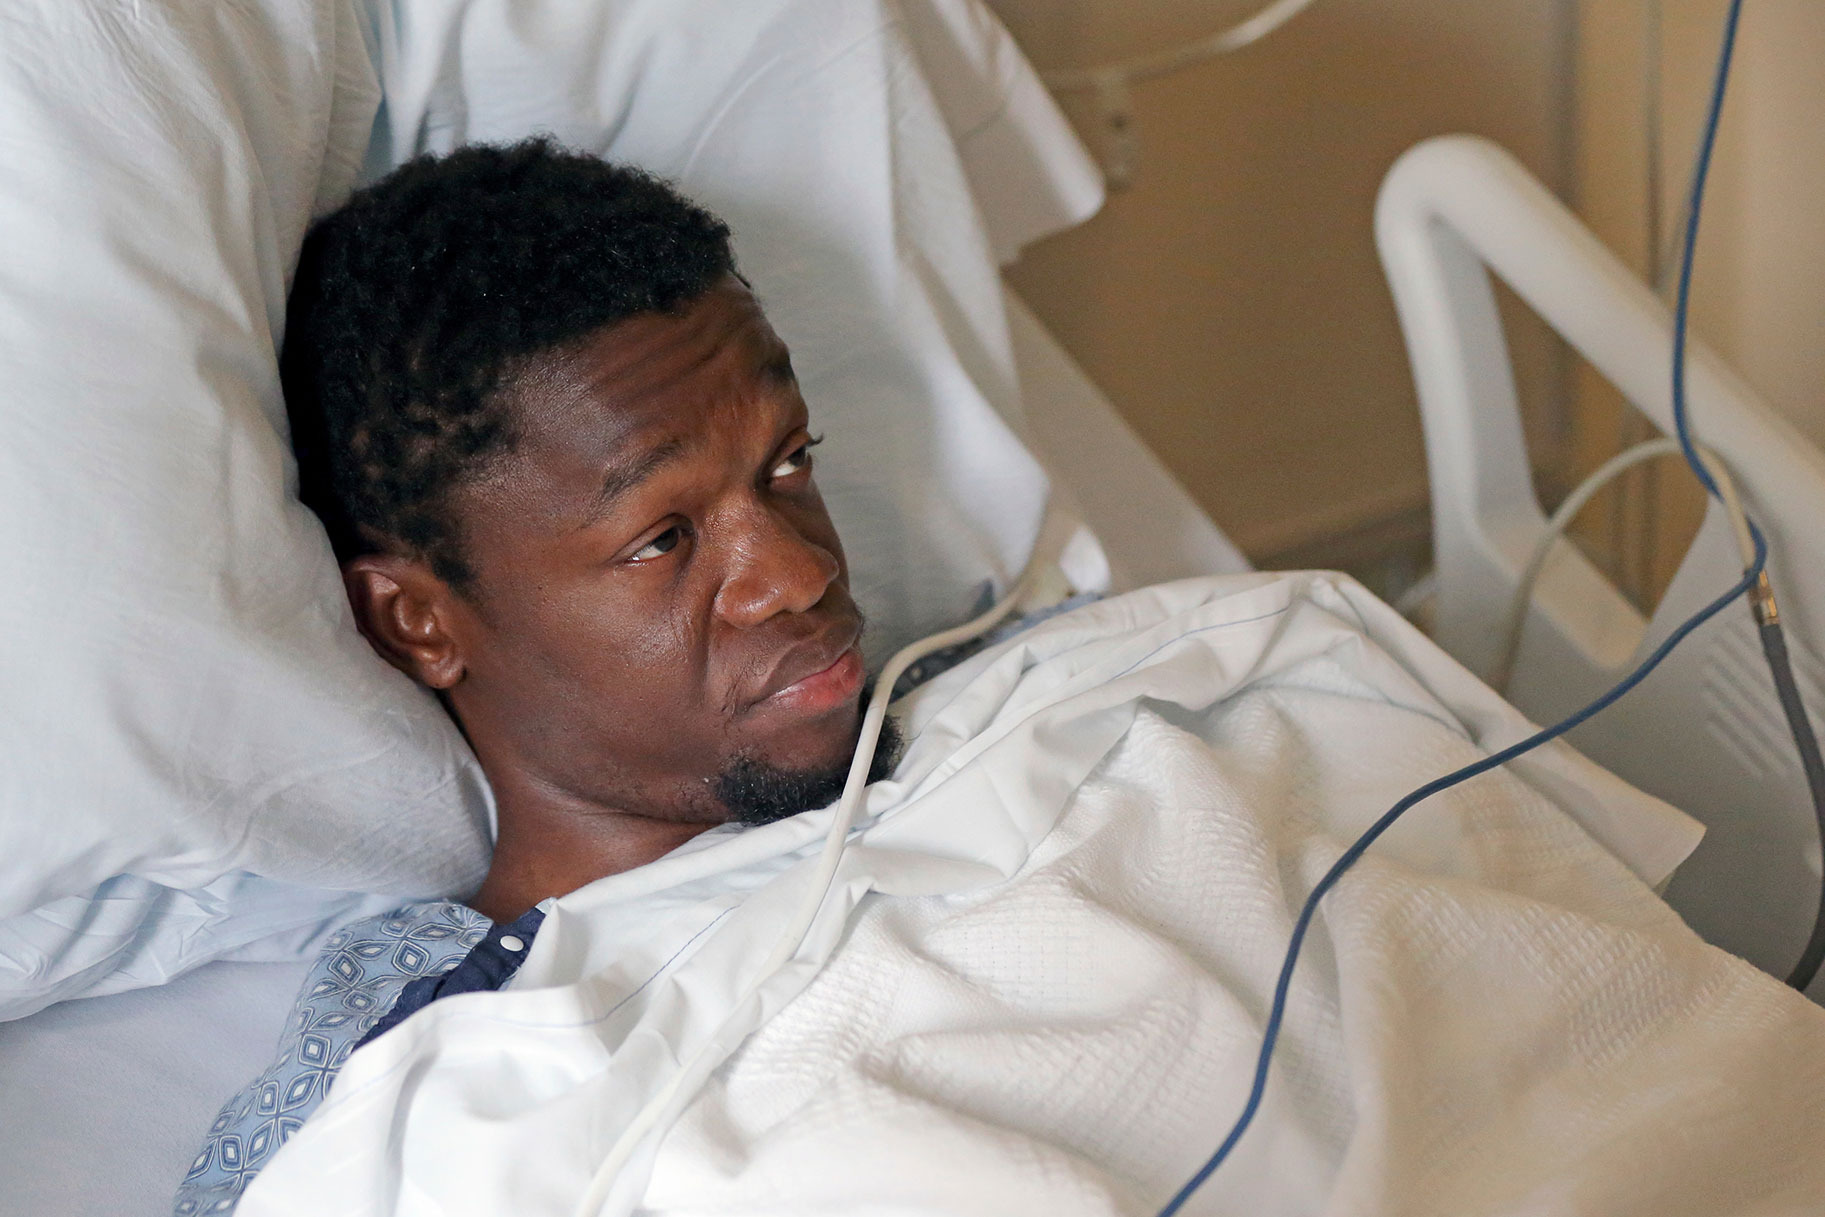 Man Who Viciously Slayed Boston Doctors Gets Life In Prison Without Parole